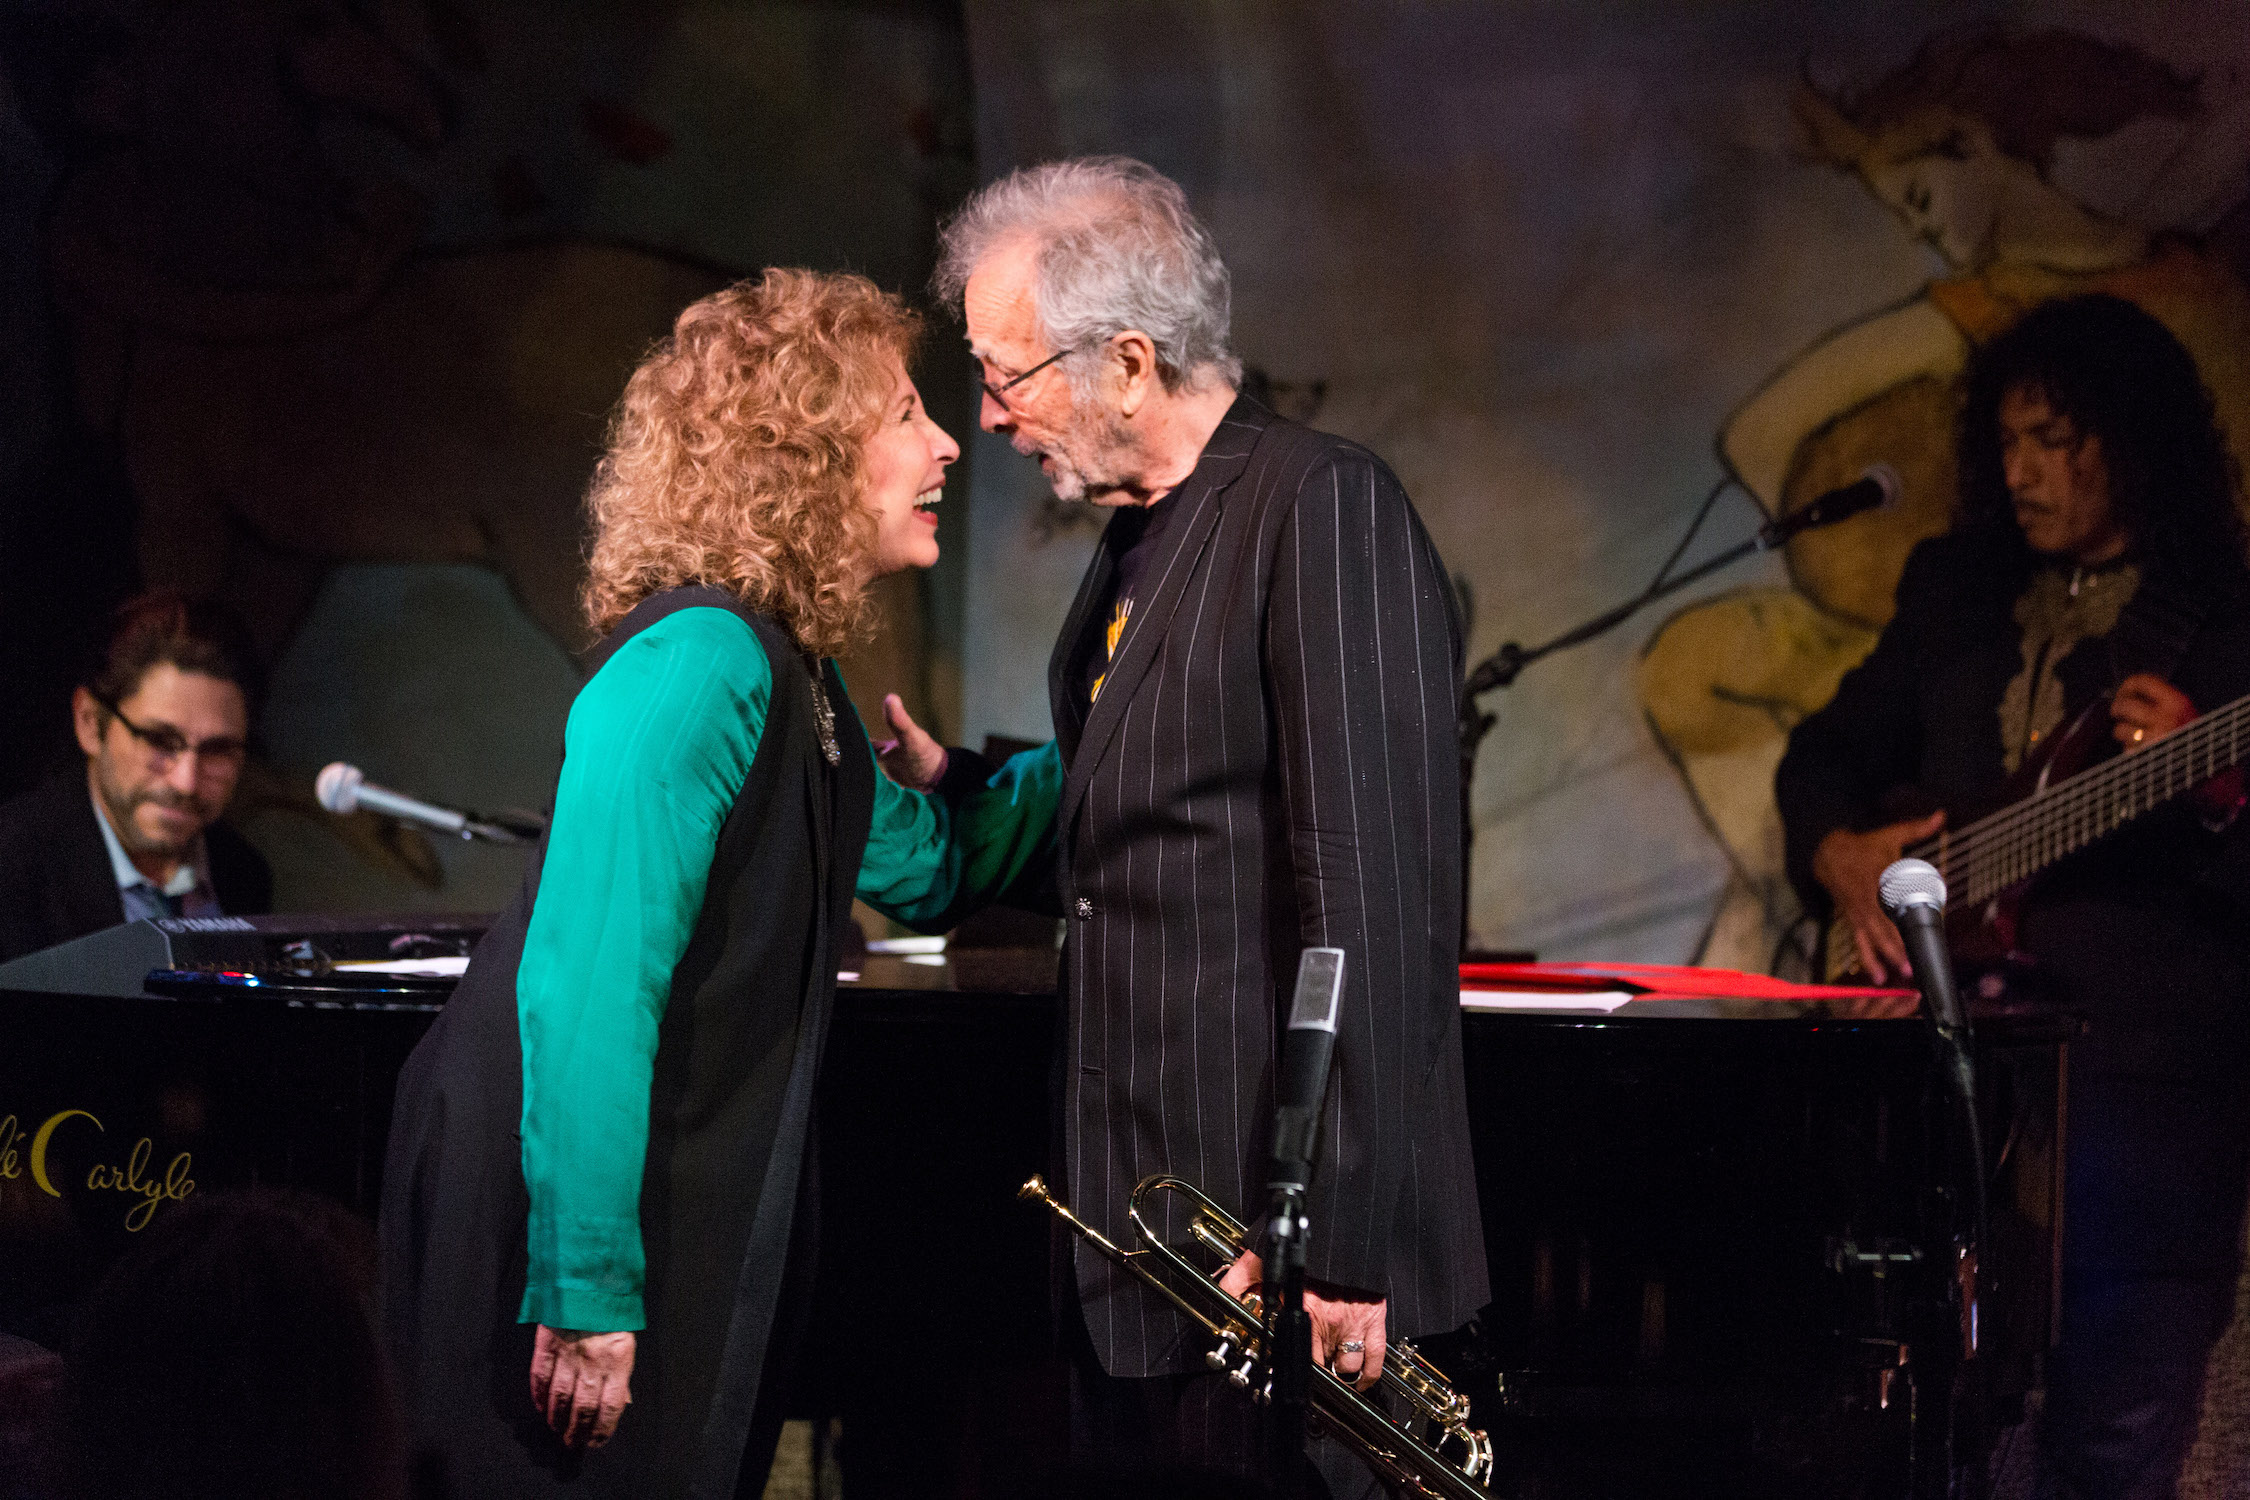 Herb Alpert & Lani Hall Back at The Carlyle